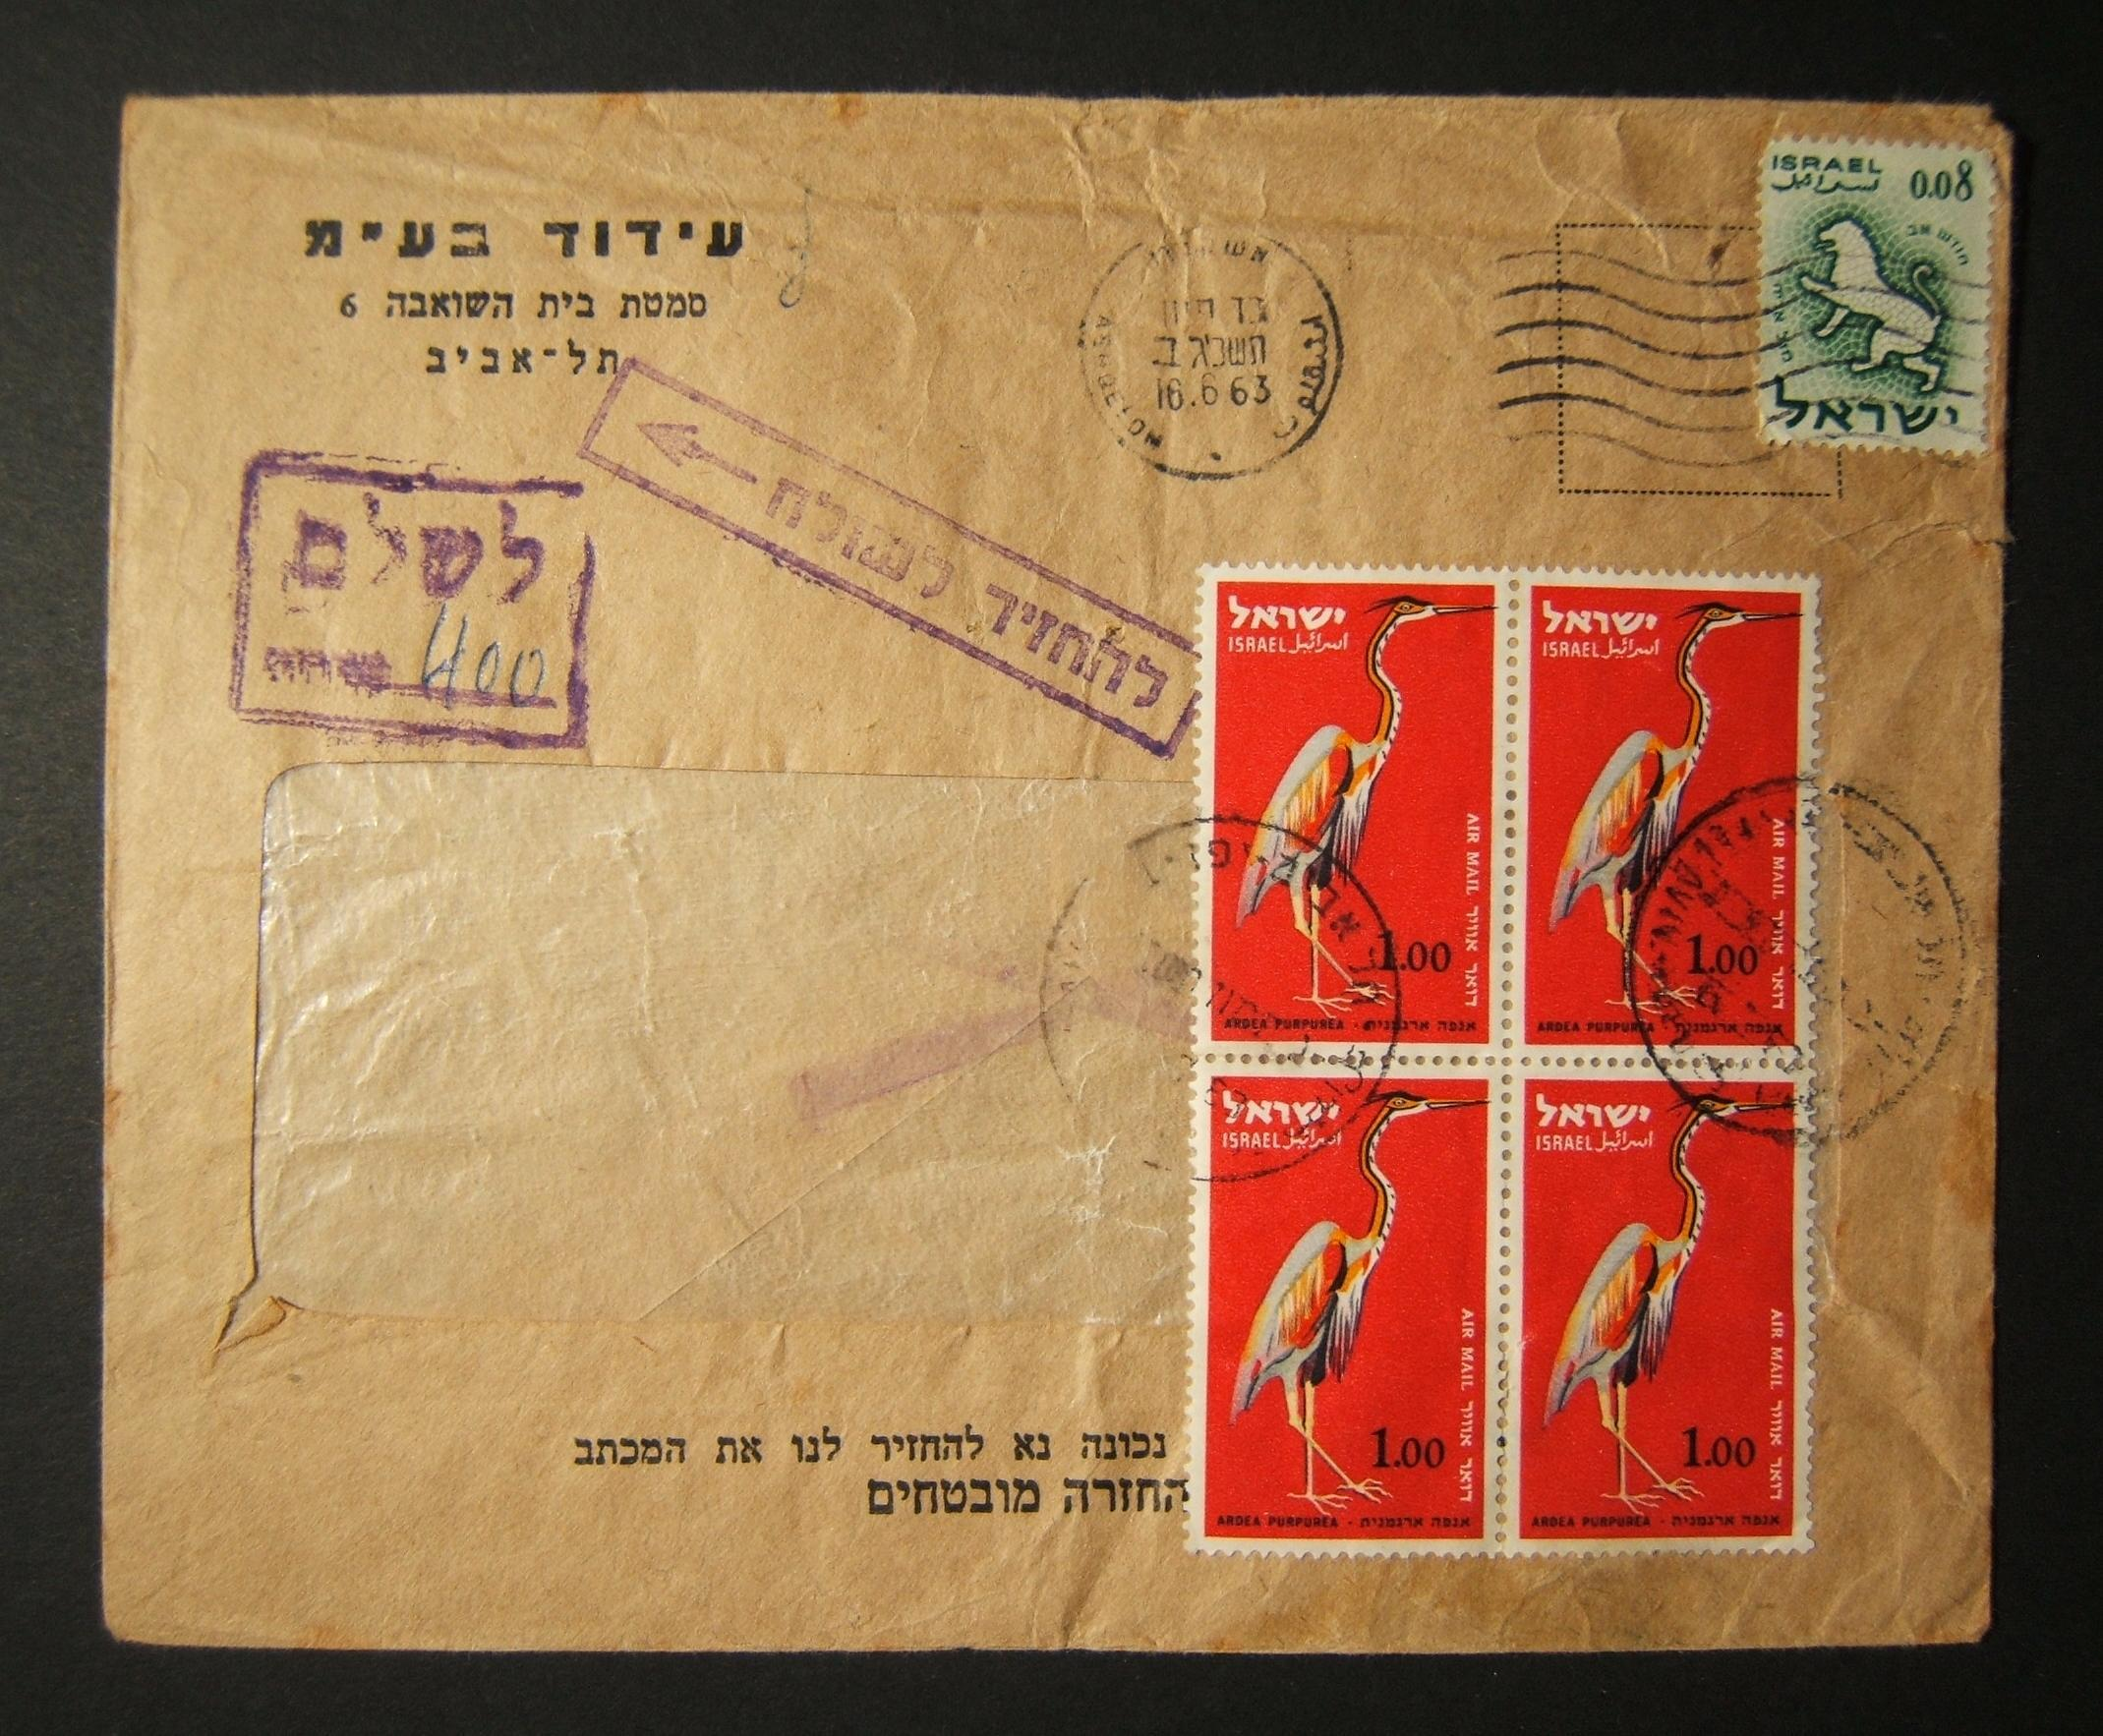 1963 domestic 'top of the pile' taxed franking: 16-6-63 printed matter cover ex TLV branch of Idud Ltd. (on TLV return addressed stationary) and franked domestic 8 Ag PM rate using